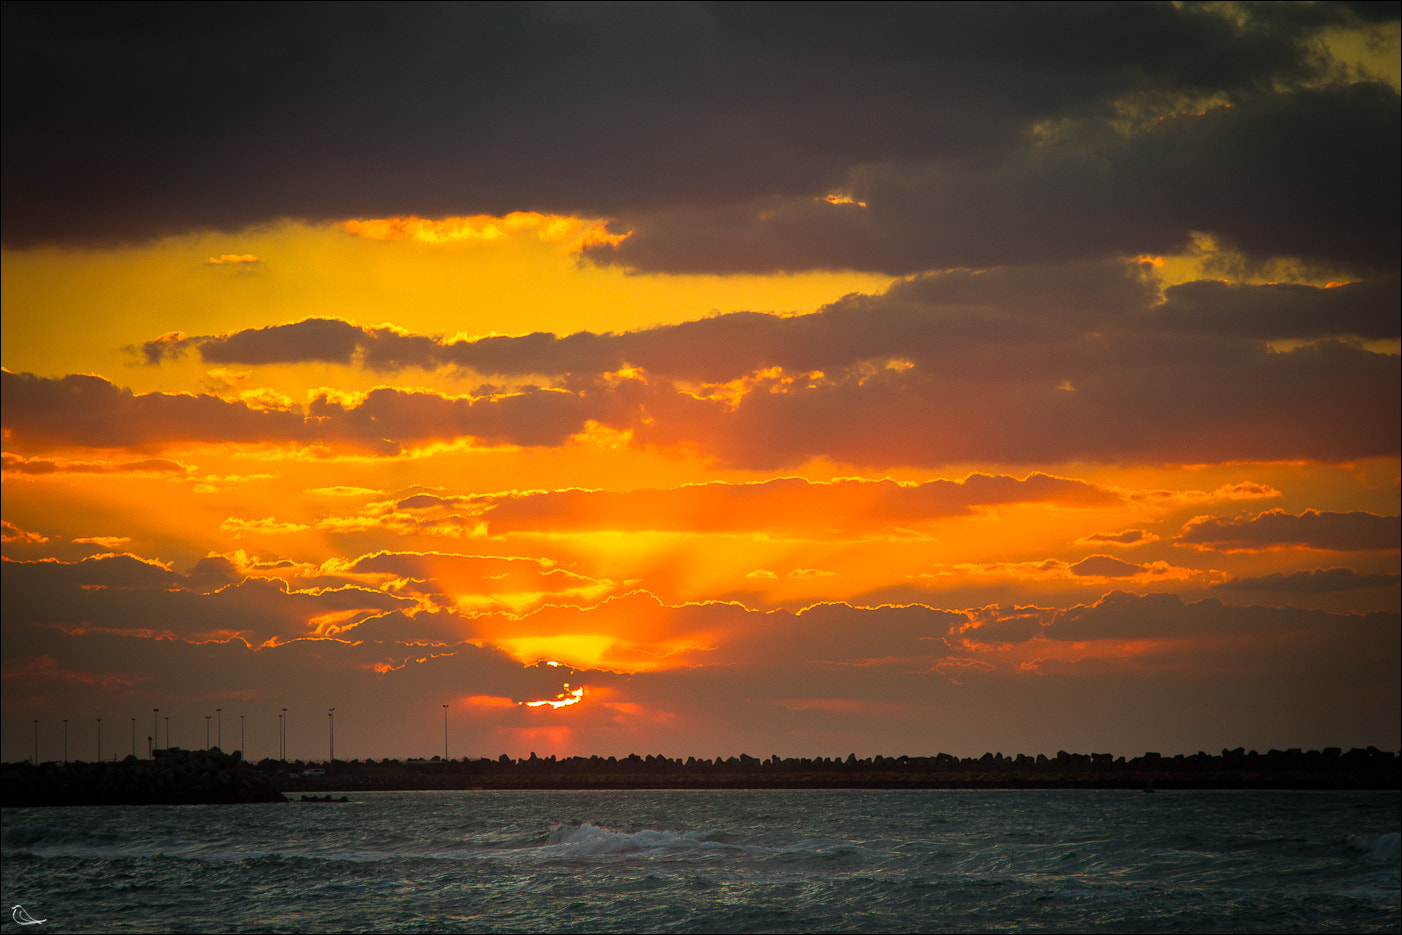 Photograph Sharjah sunset by Alexey Kozlov on 500px